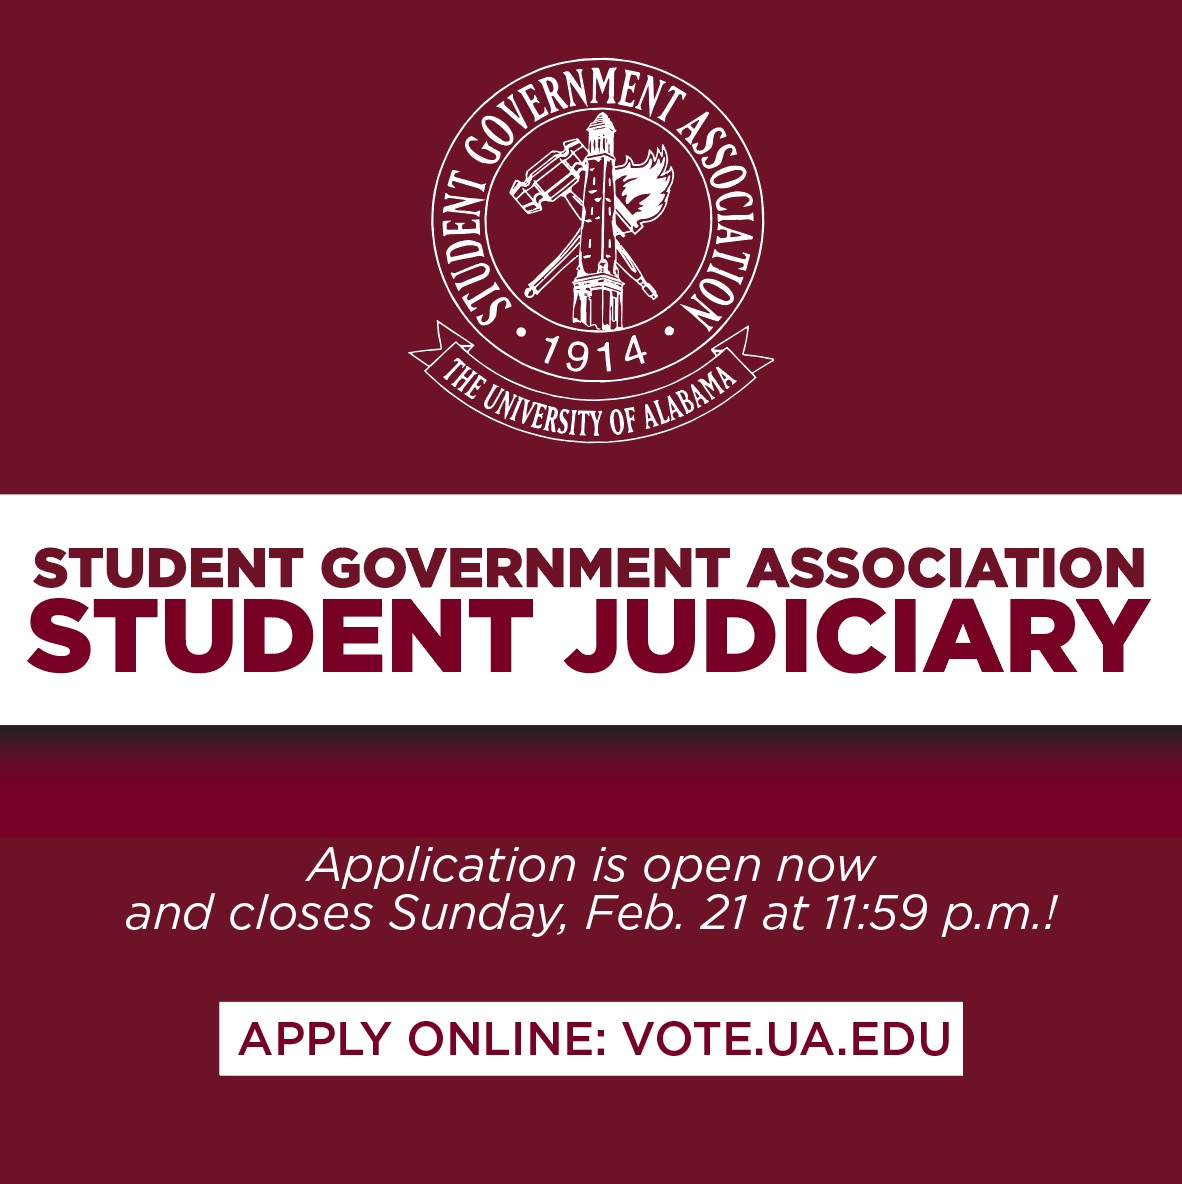 SGA Judicial Board Applications out now until February 21 at 11:59